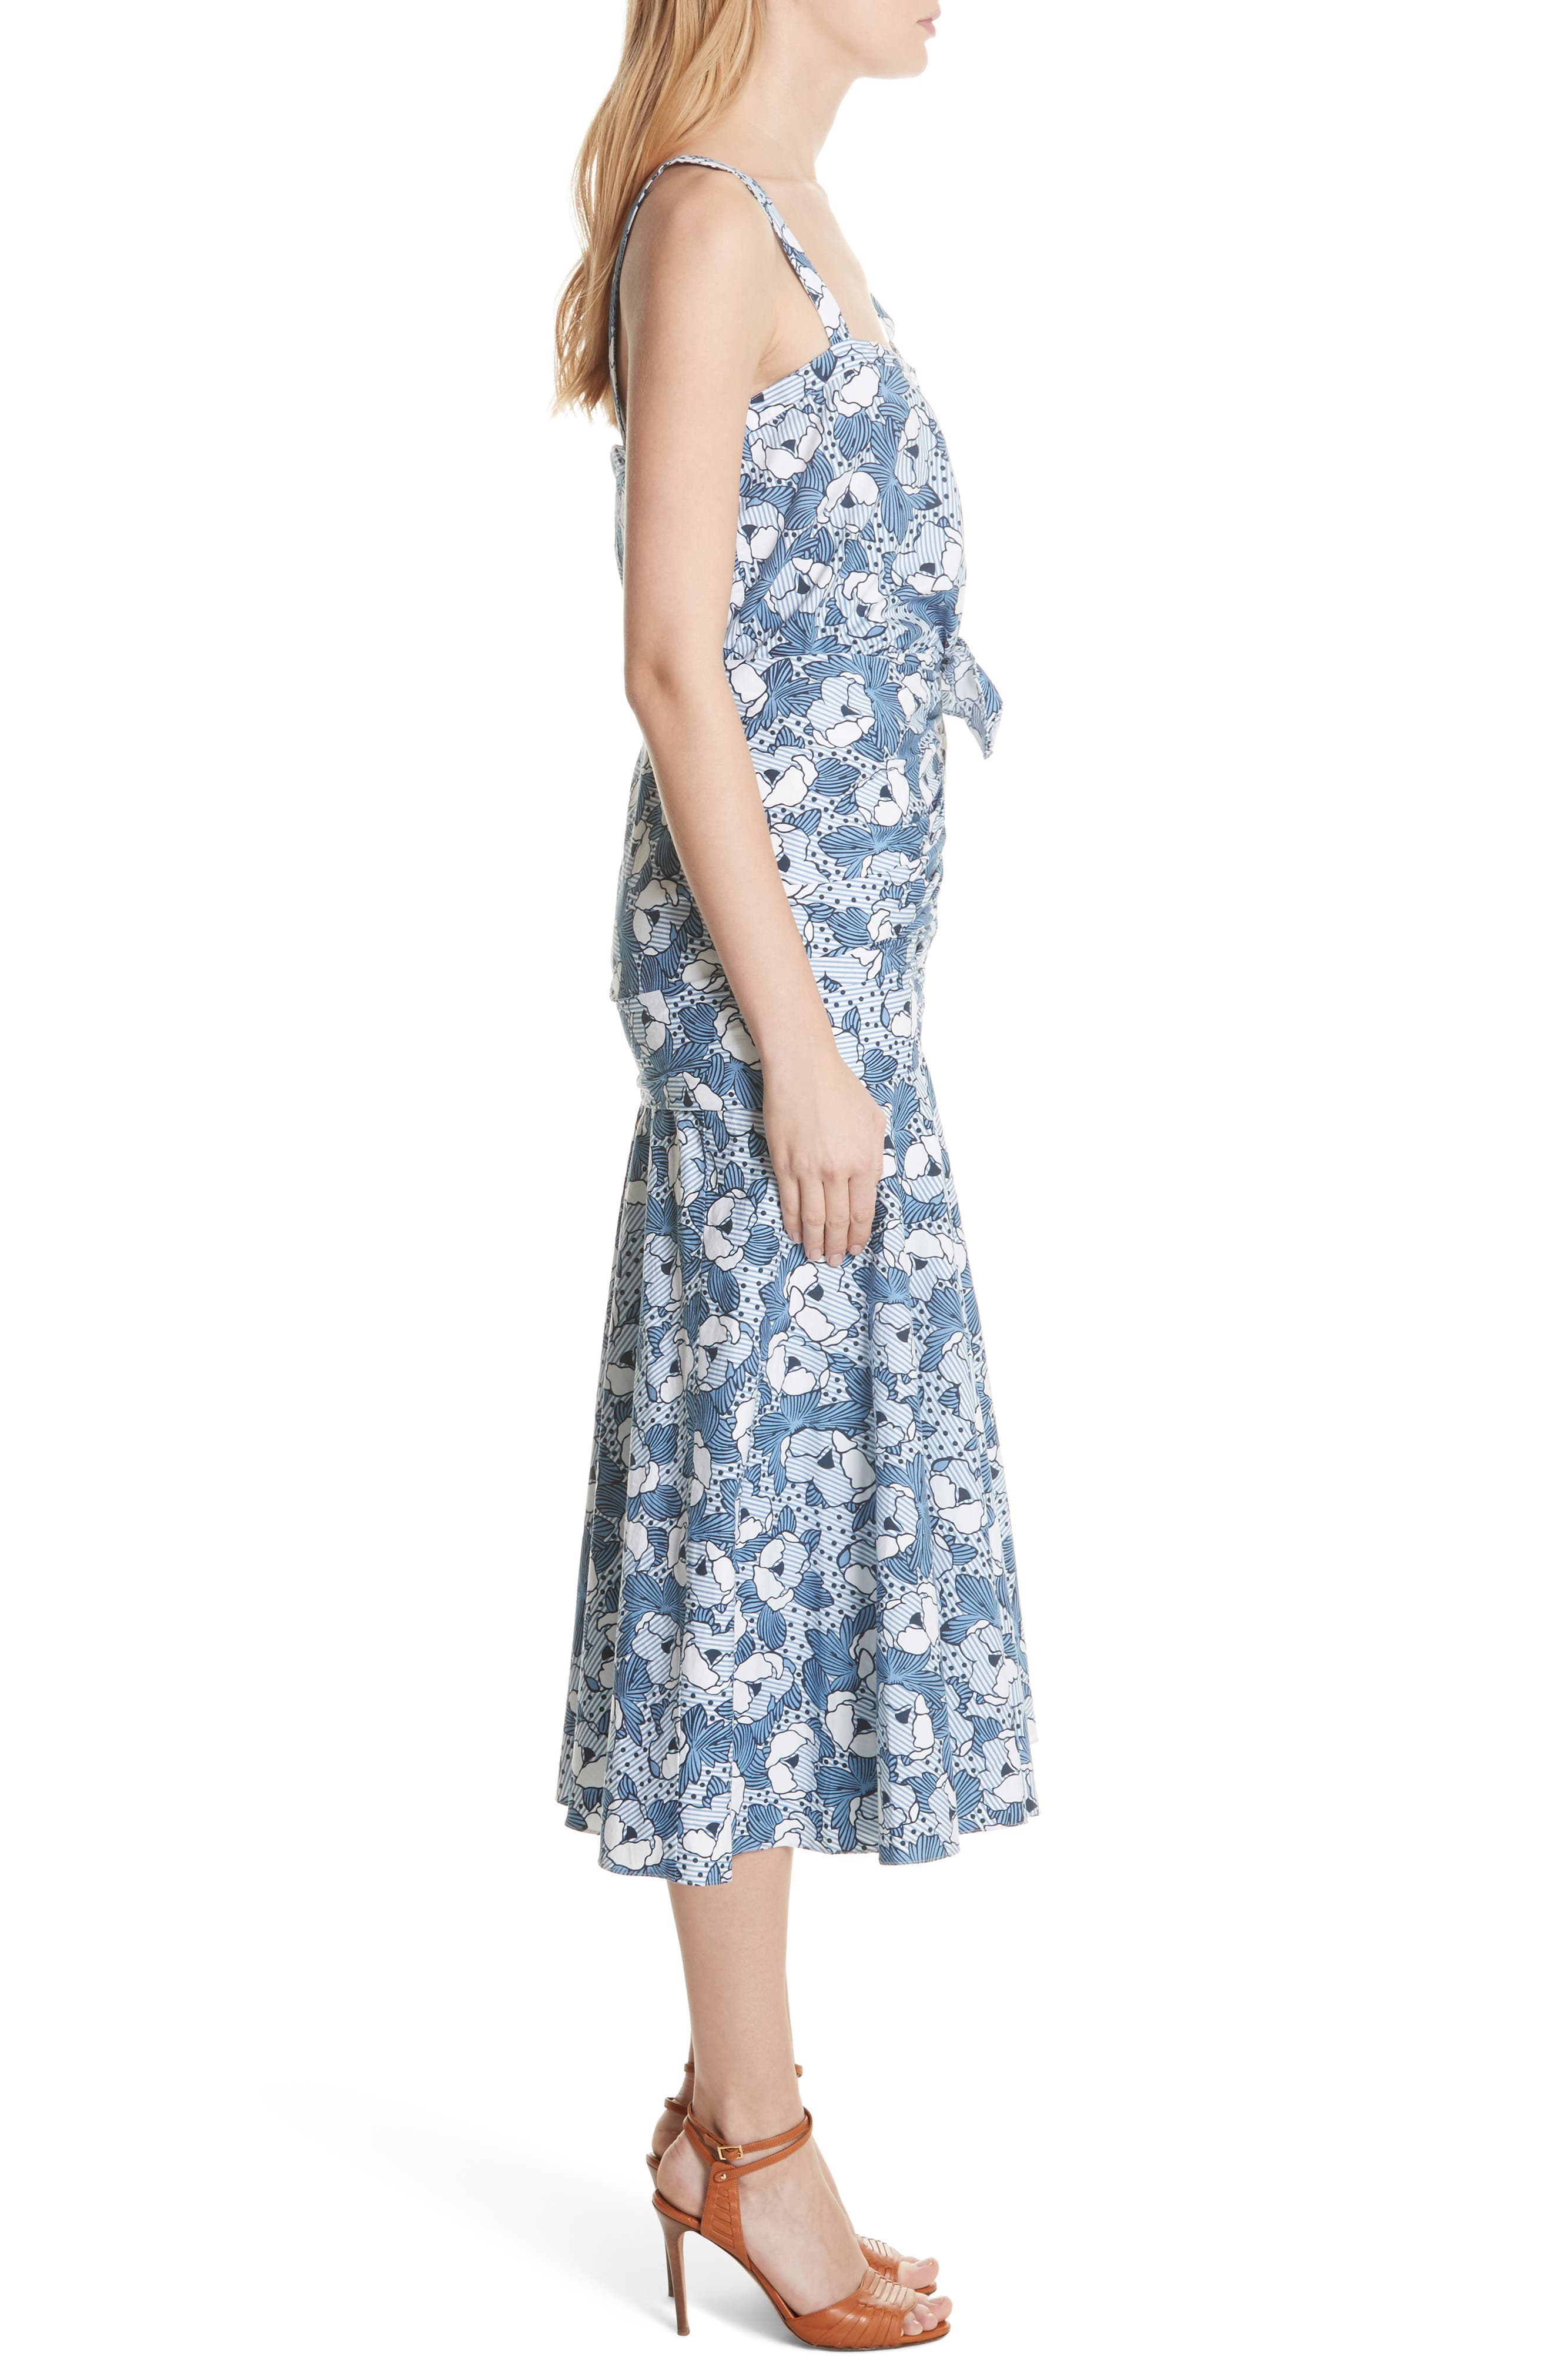 Marena Ruched Waist Floral Midi Dress,                             Alternate thumbnail 3, color,                             Blue/ White